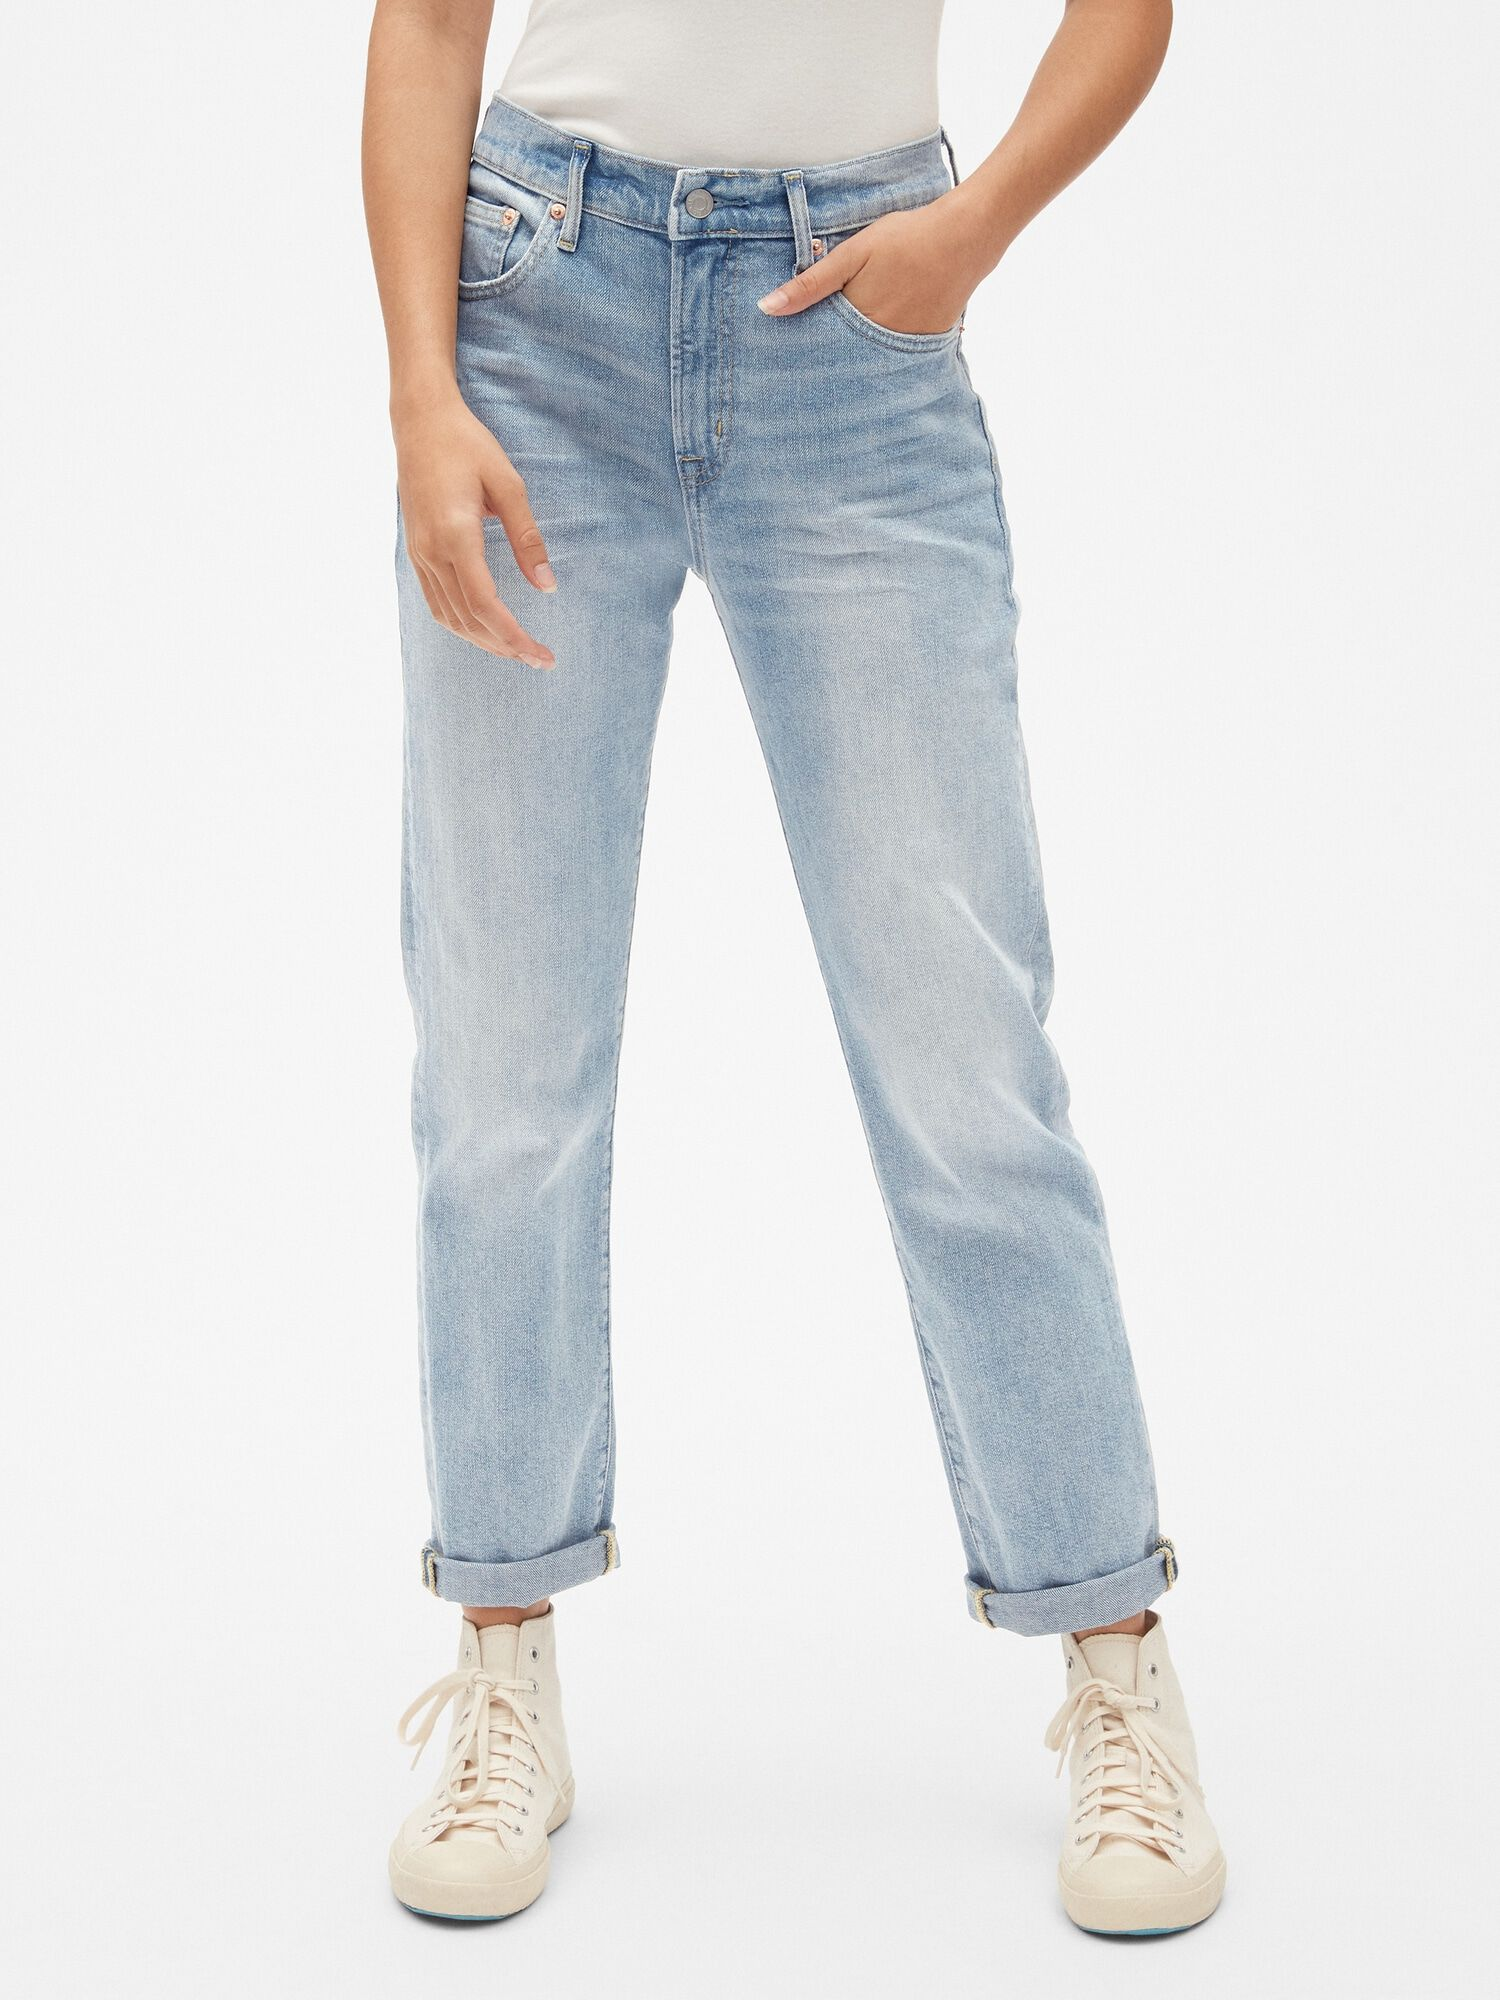 62f4b739d94b5c High Rise Best Girlfriend Jeans | Gap® UK